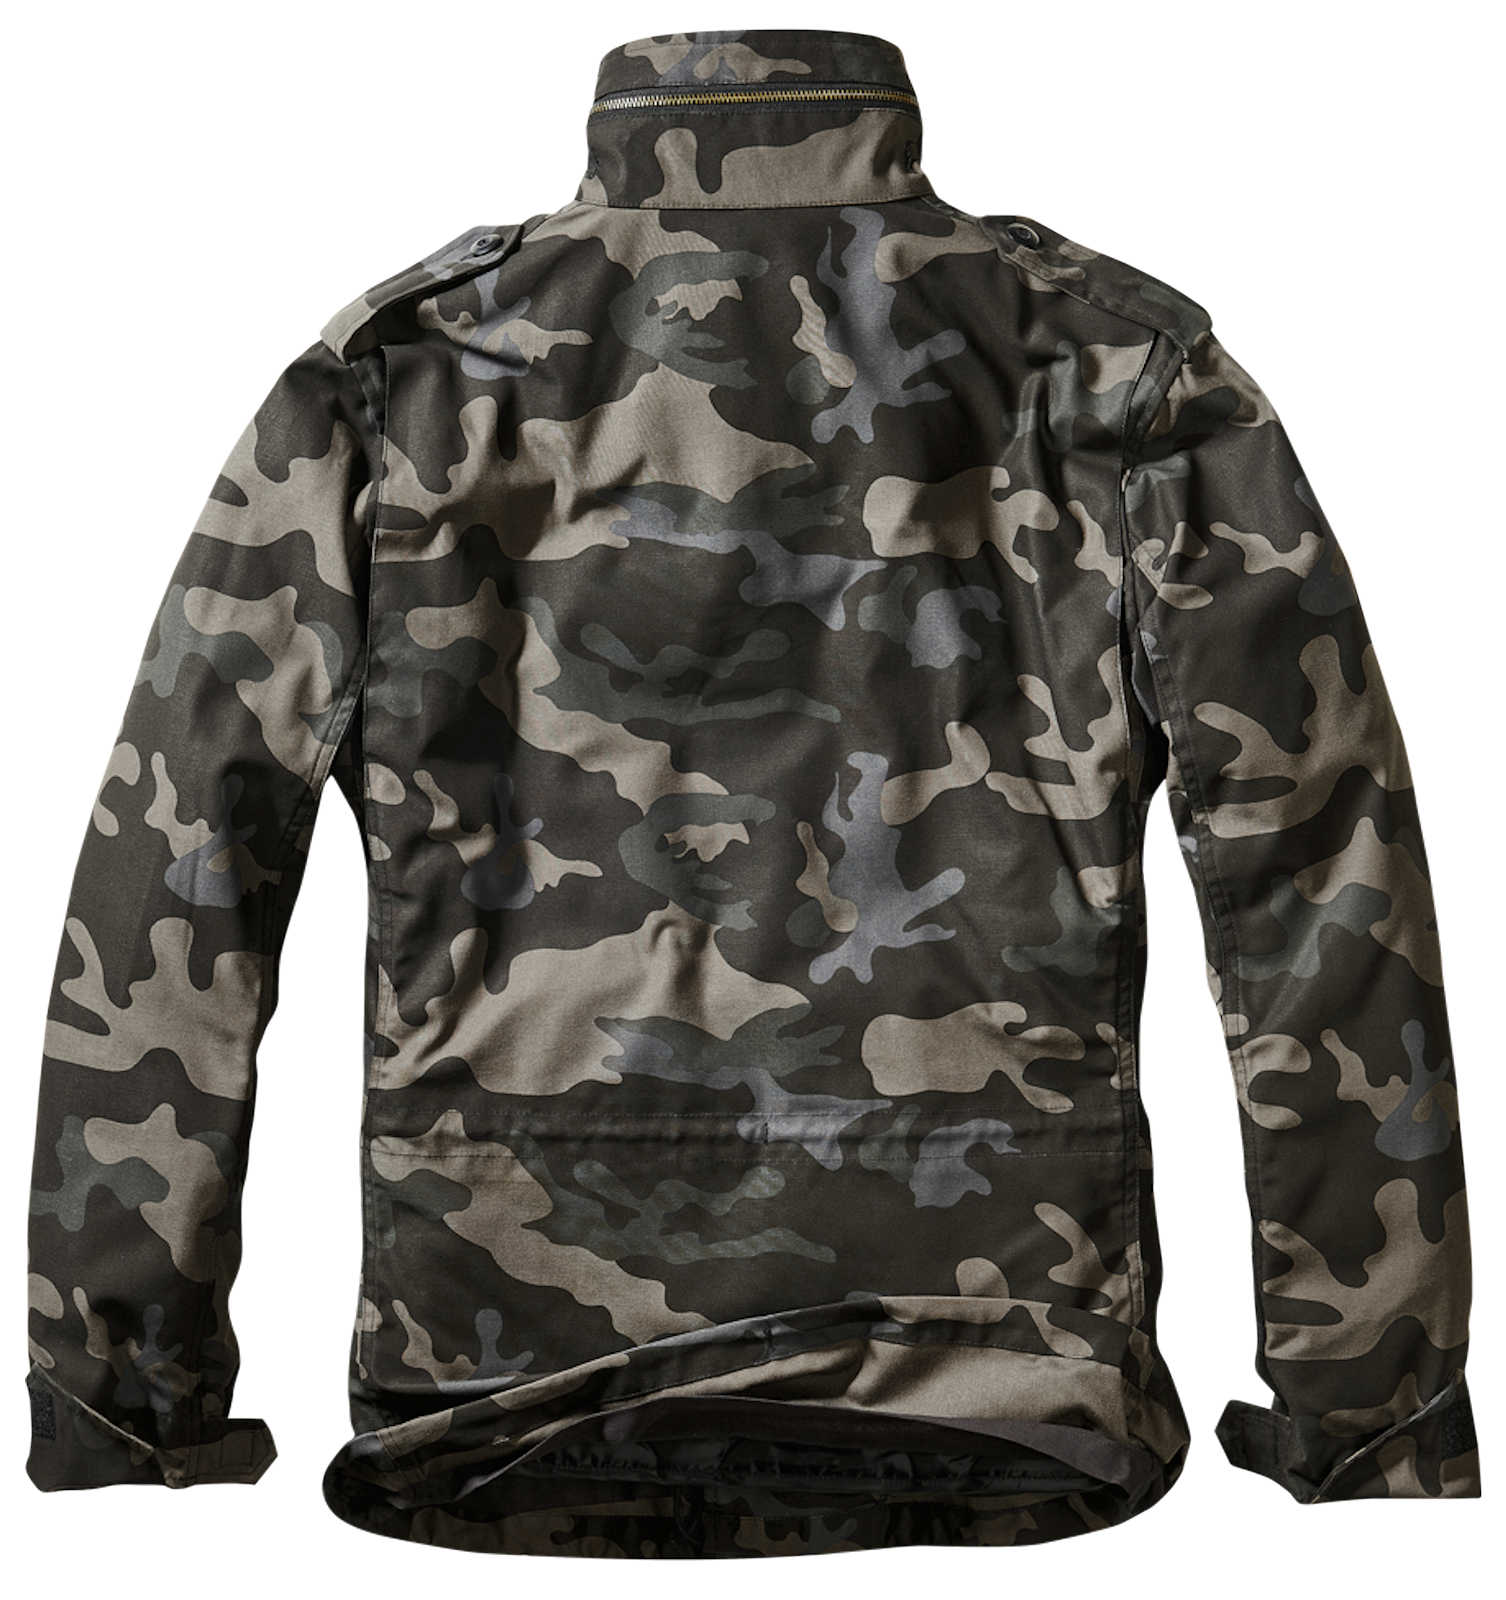 Brandit caballeros m65 standard 3108 Classic campo chaqueta outdoor Parka us forraje